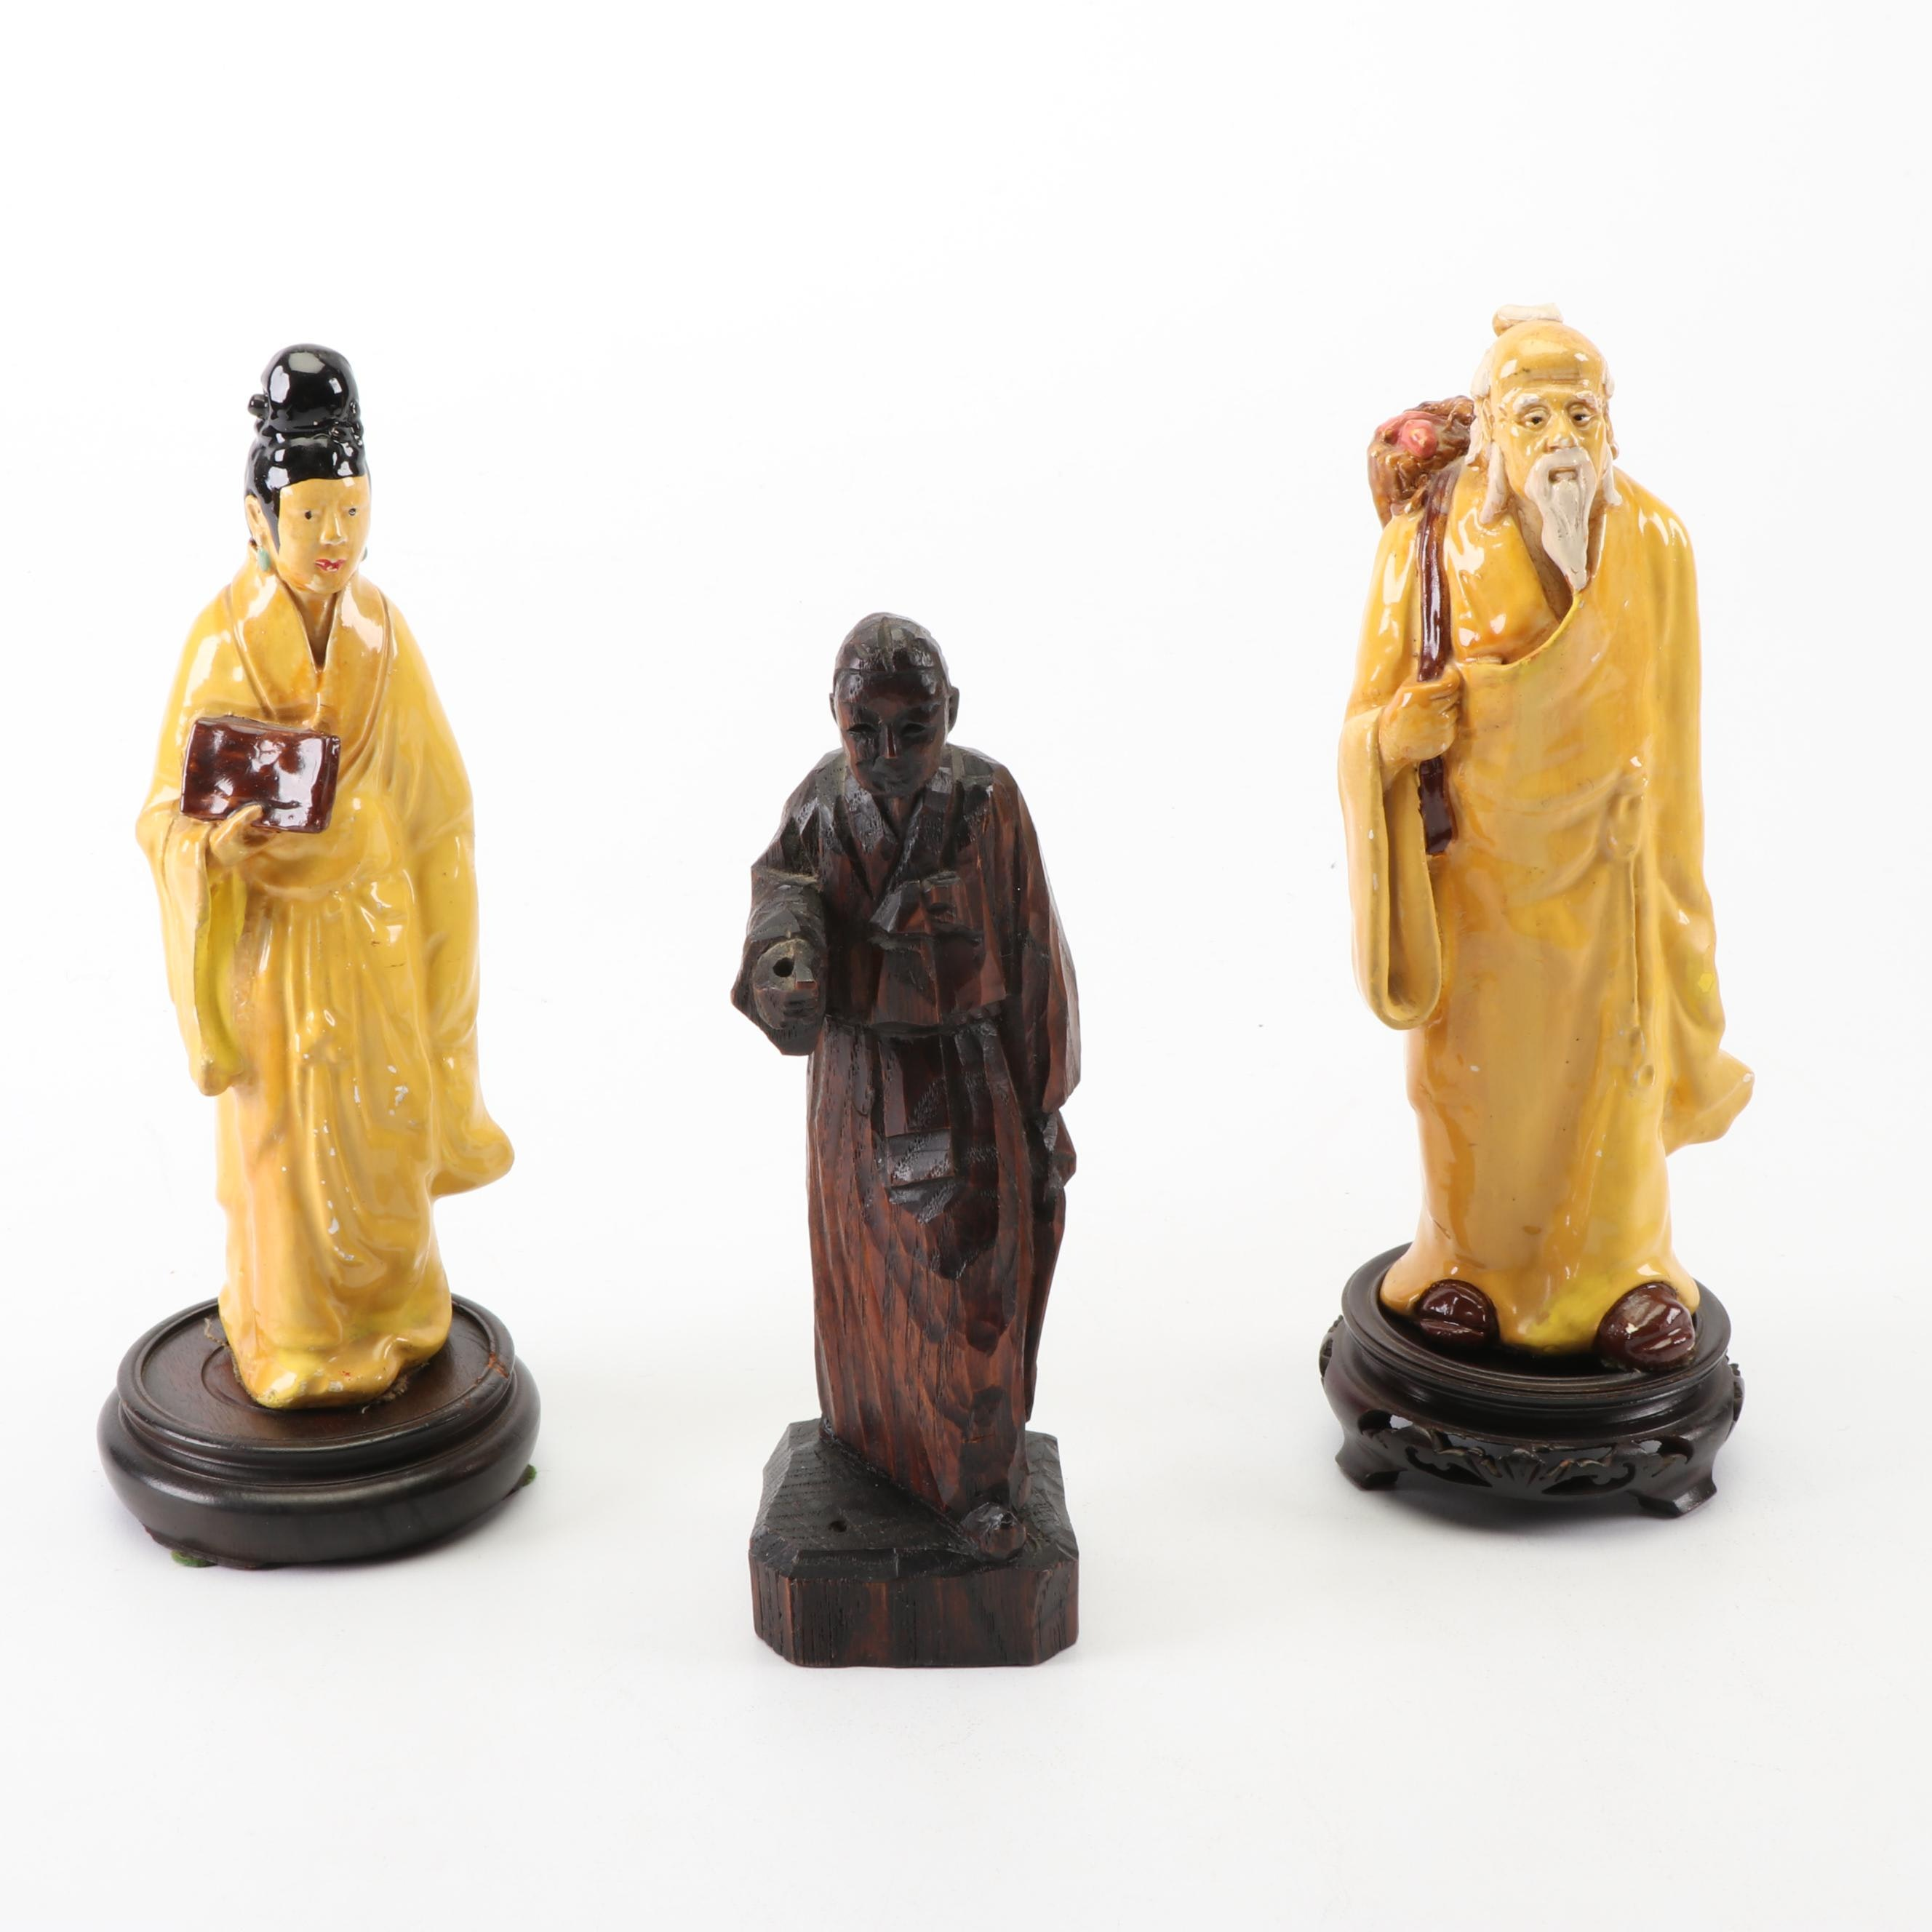 East Asian Figurines